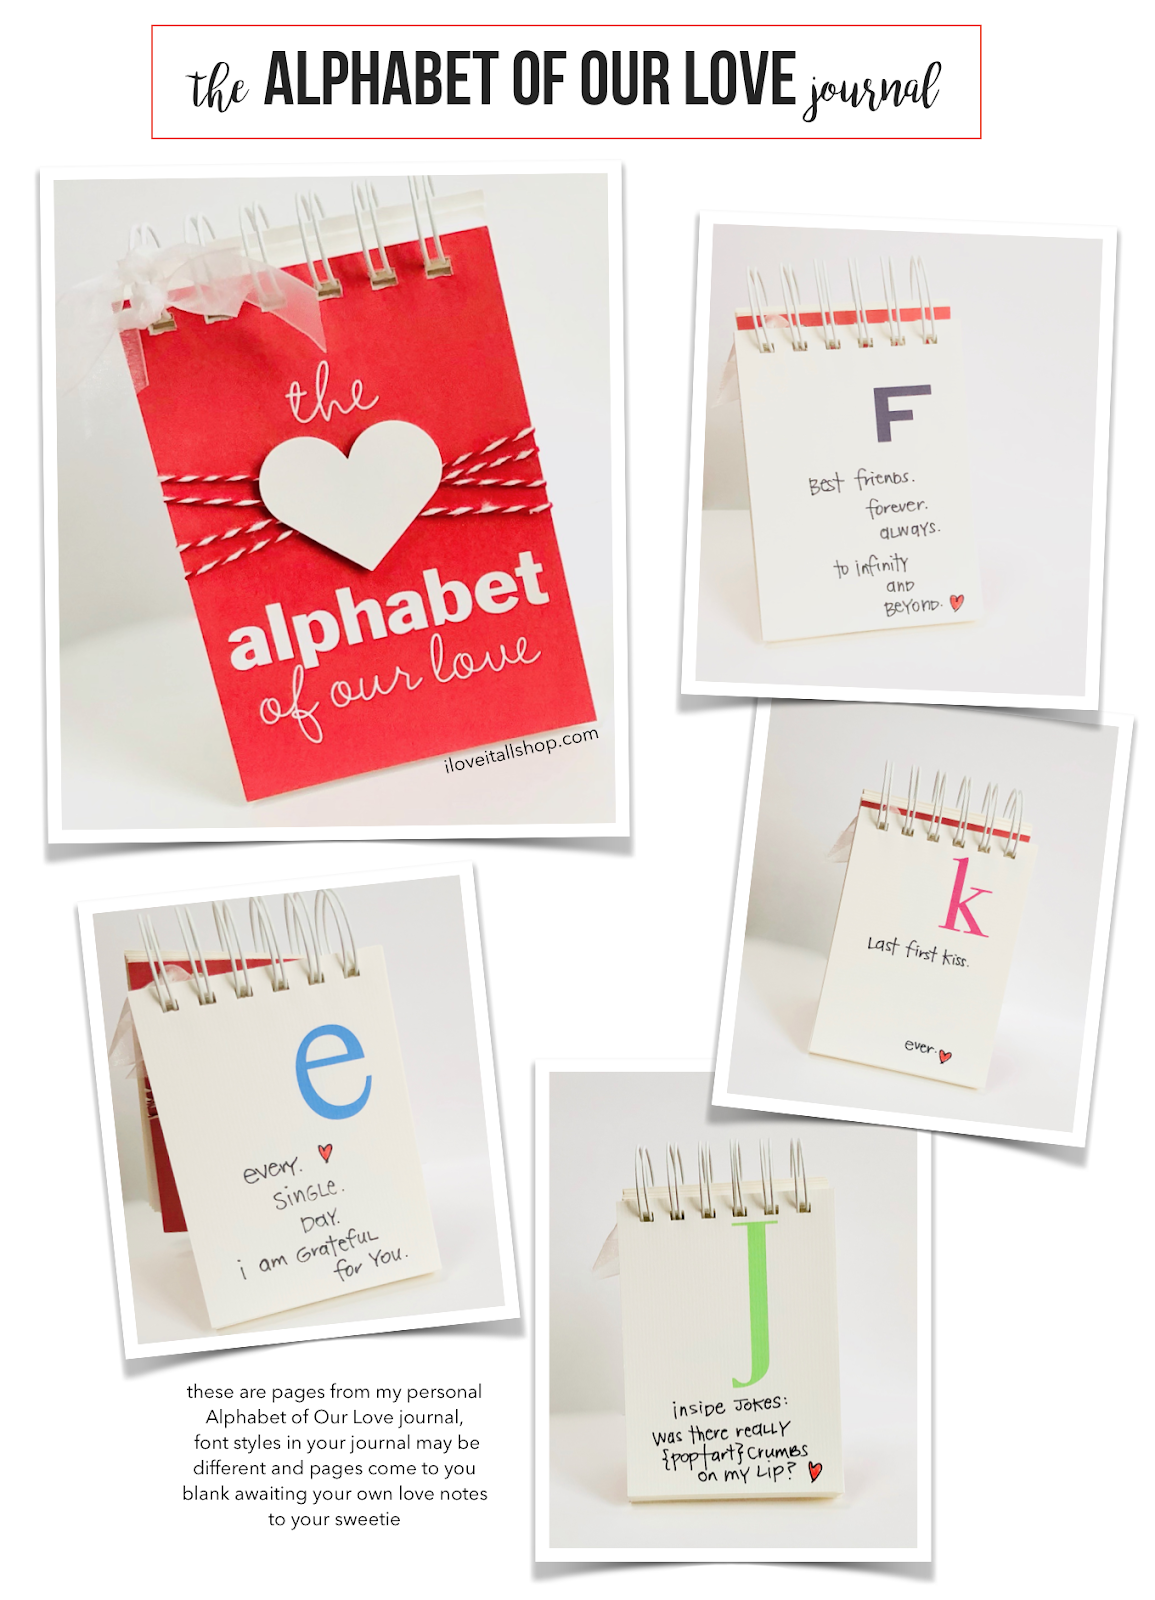 #Alphabet of Our Love #list ideas #love letters #Alphabet List Ideas #Book of Love #Love Letter Ideas #I Love It All #Letter f #Letter K #Letter J #Letter E